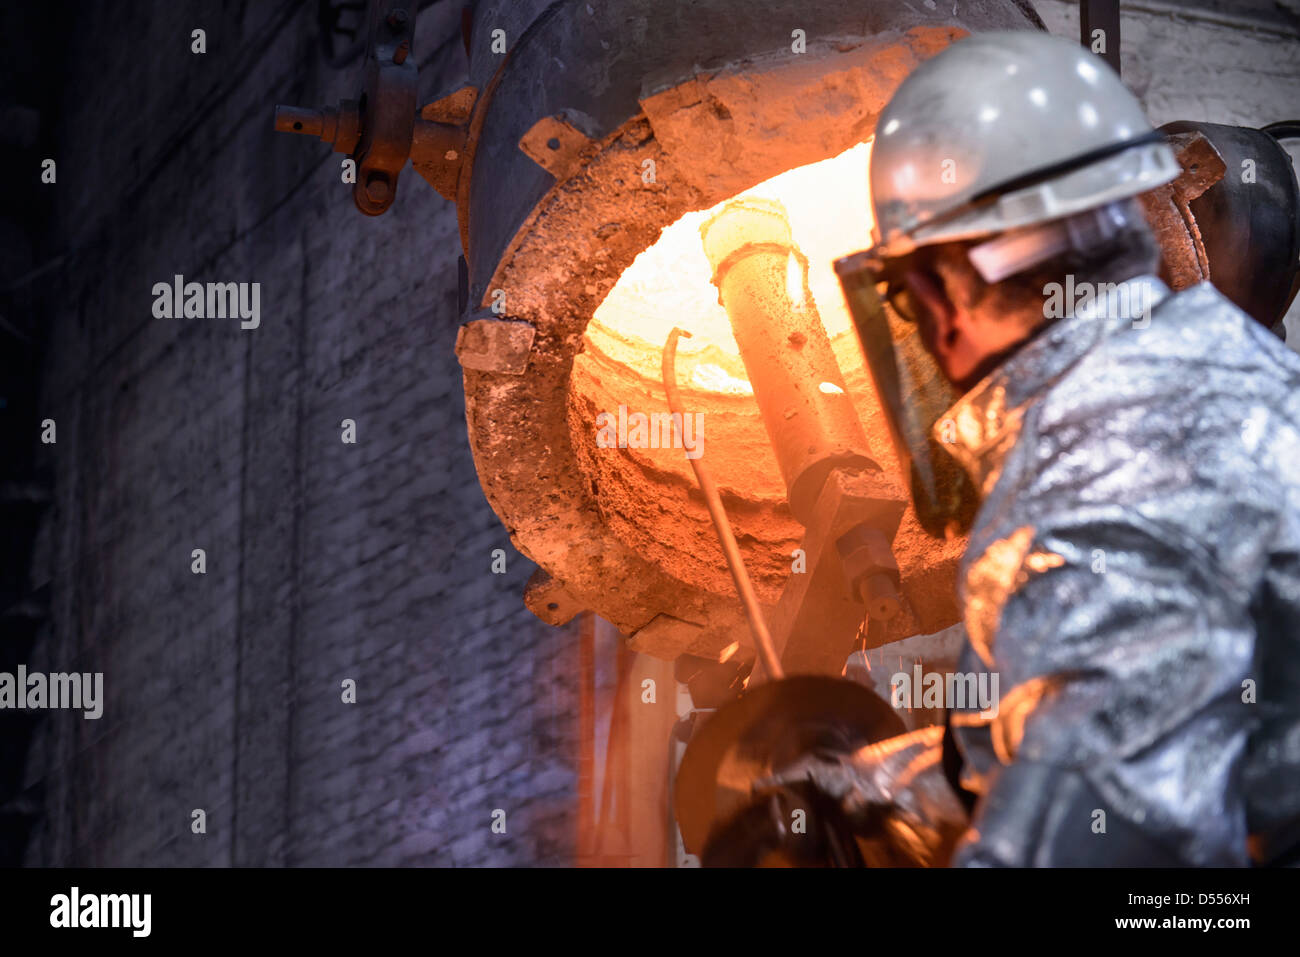 Worker cleaning metal flask in foundry - Stock Image